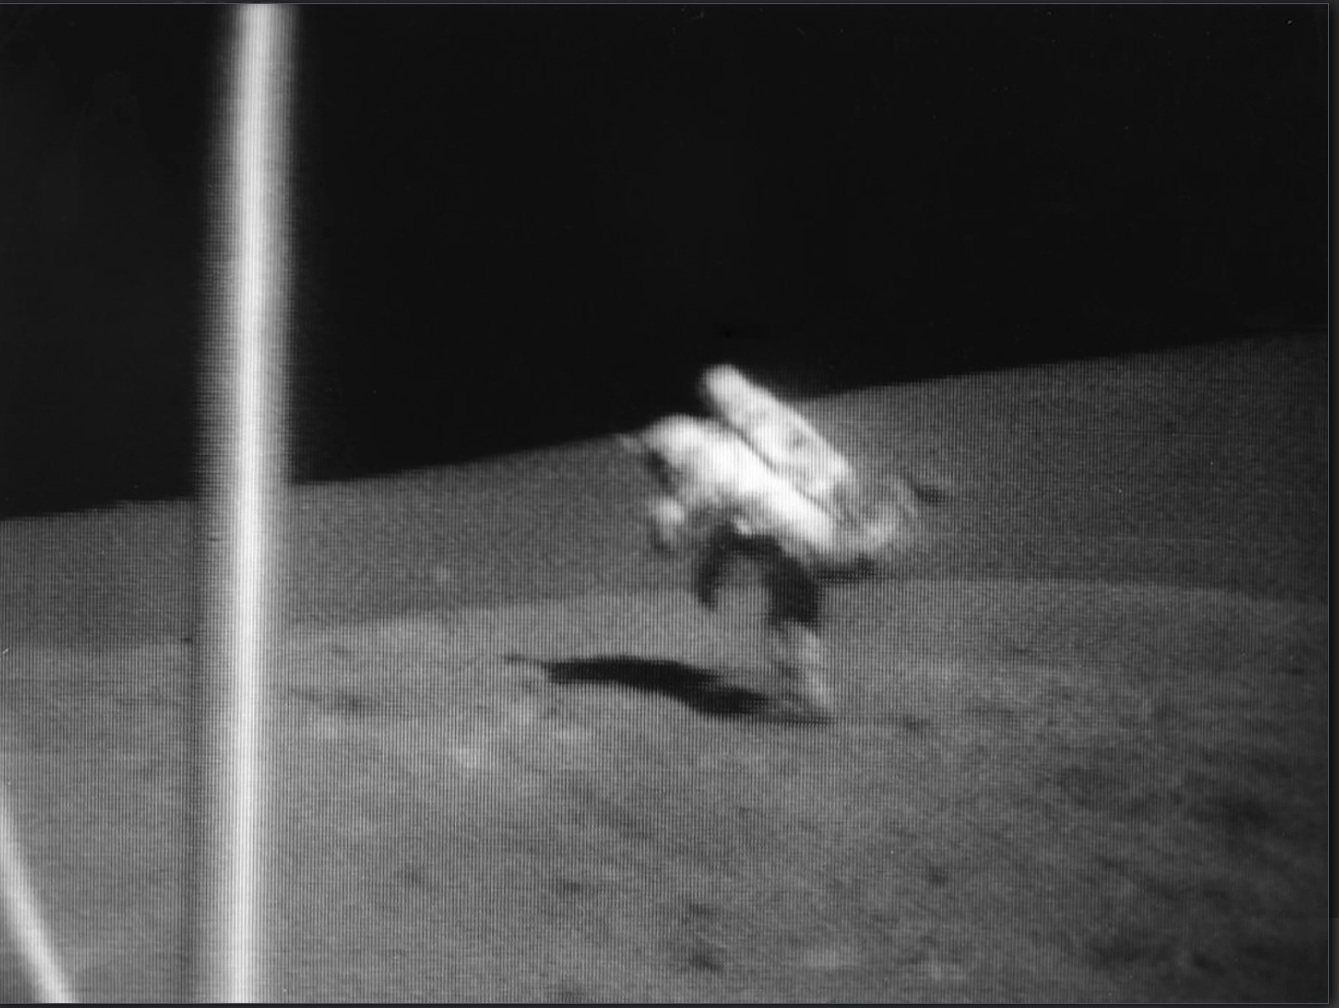 Partial gravity is potential health hazards for Astronauts in space. Here, Jack Schmitt, a NASA astronaut looses balance on the Moon. Image via NASA